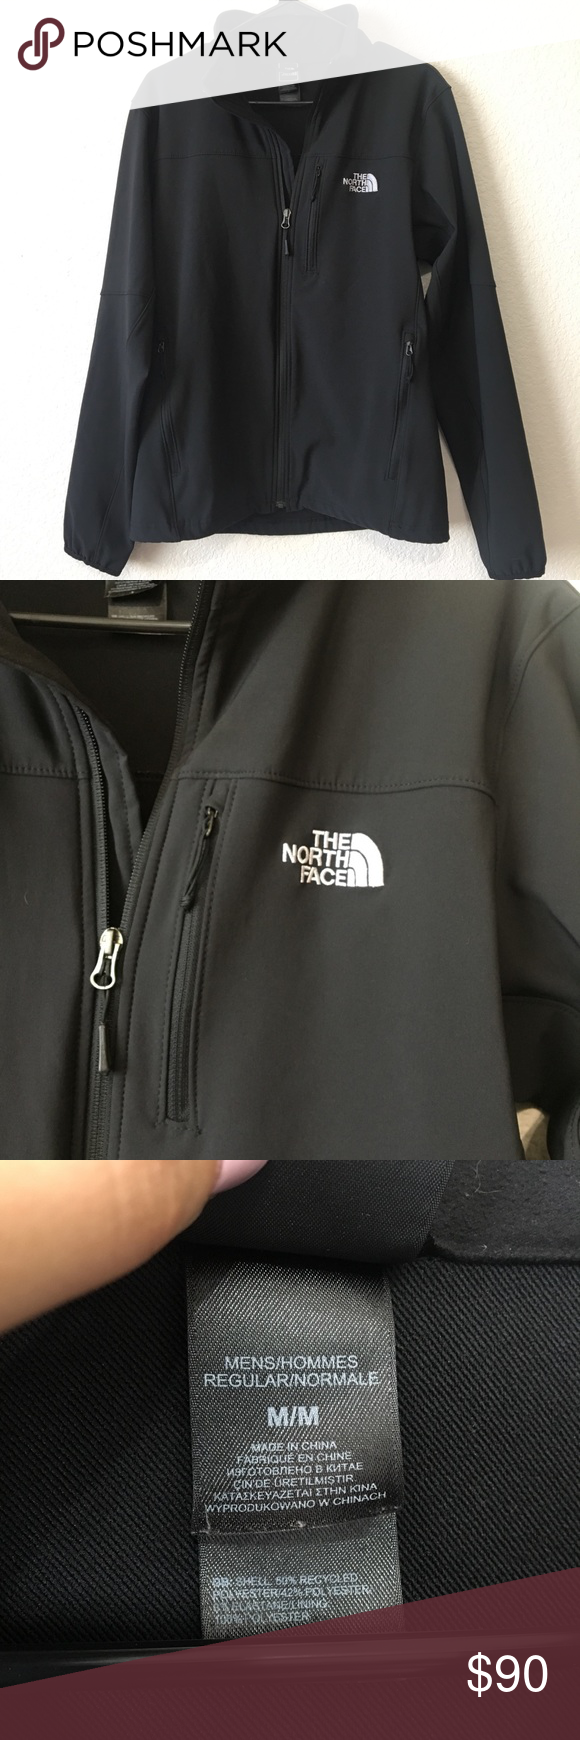 The North Face Black Jacket Black North Face Jacket Black North Face Black Jacket [ 1740 x 580 Pixel ]